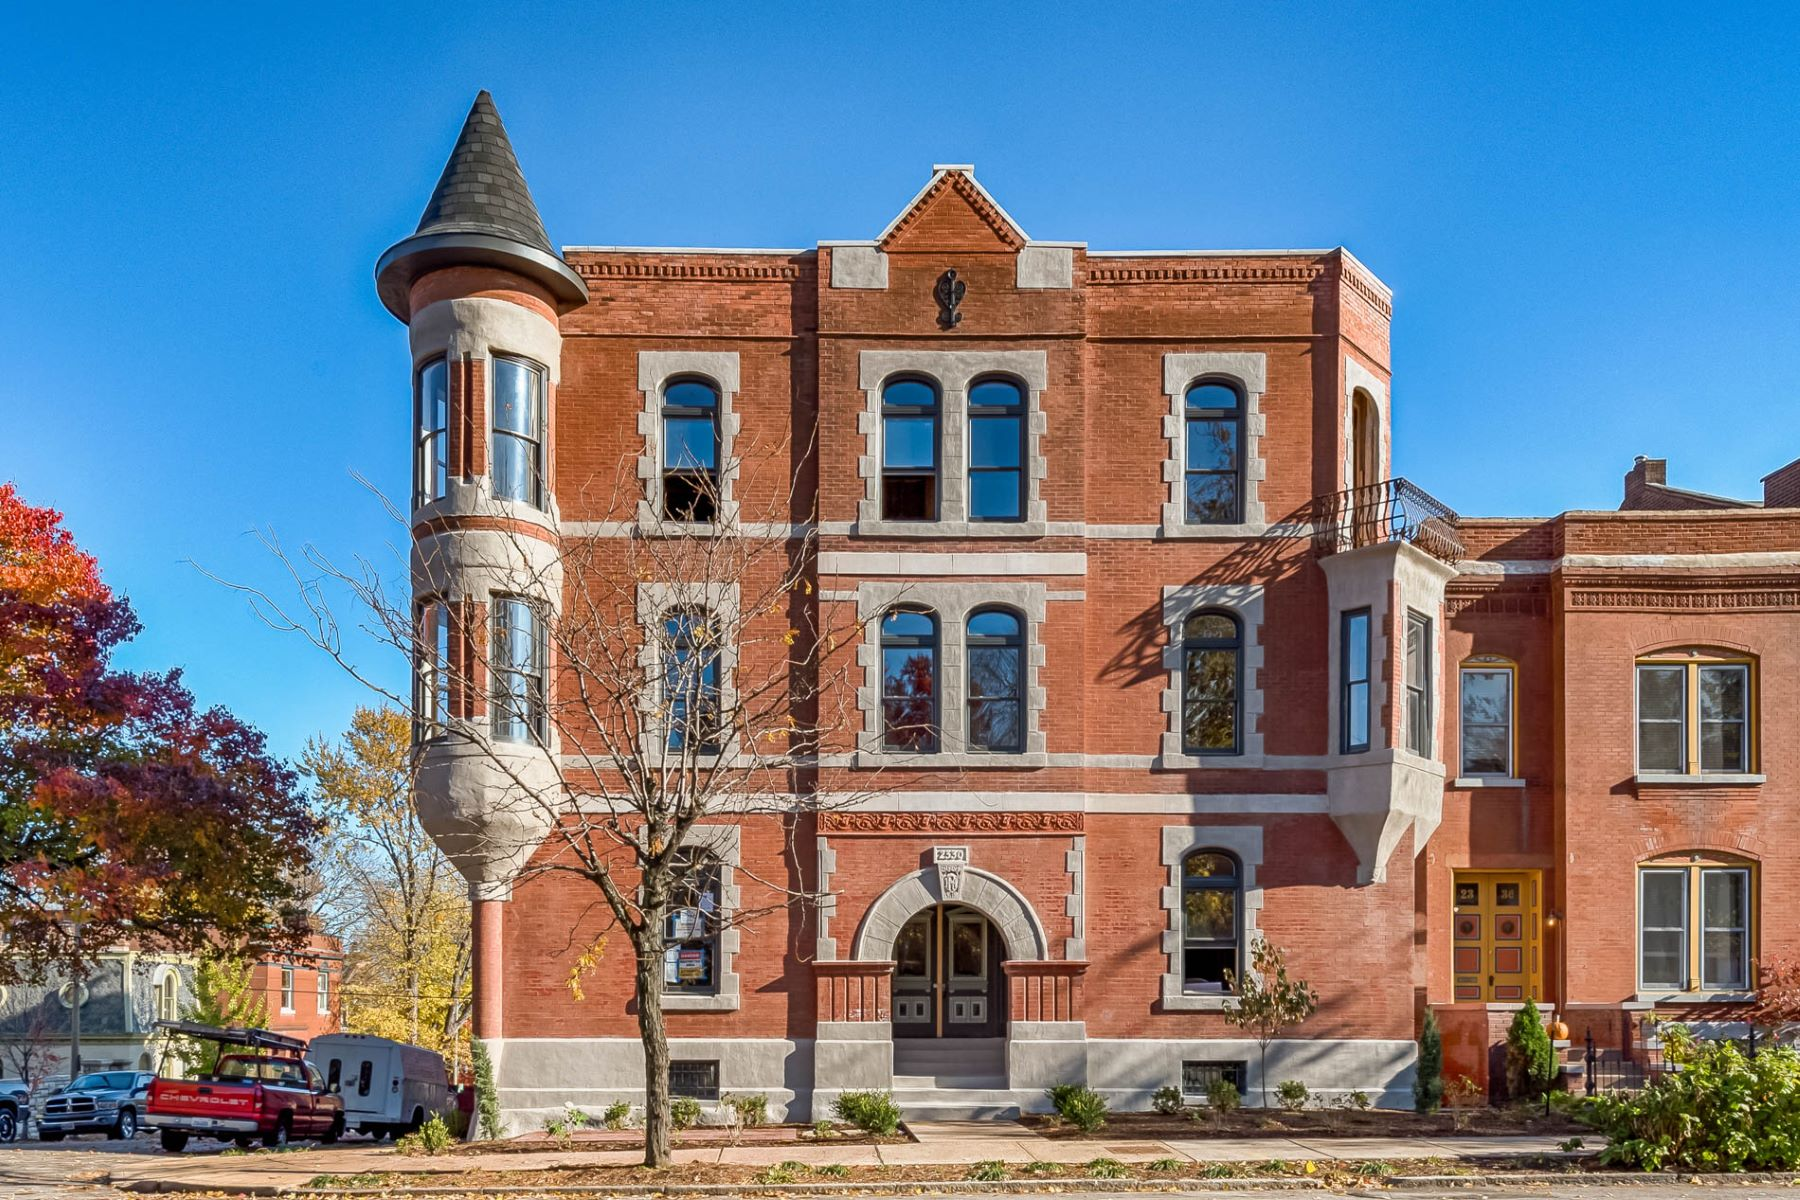 Condominium for Sale at Ruckert on 12th 2330 South 12th Street # 101 St. Louis, Missouri 63104 United States